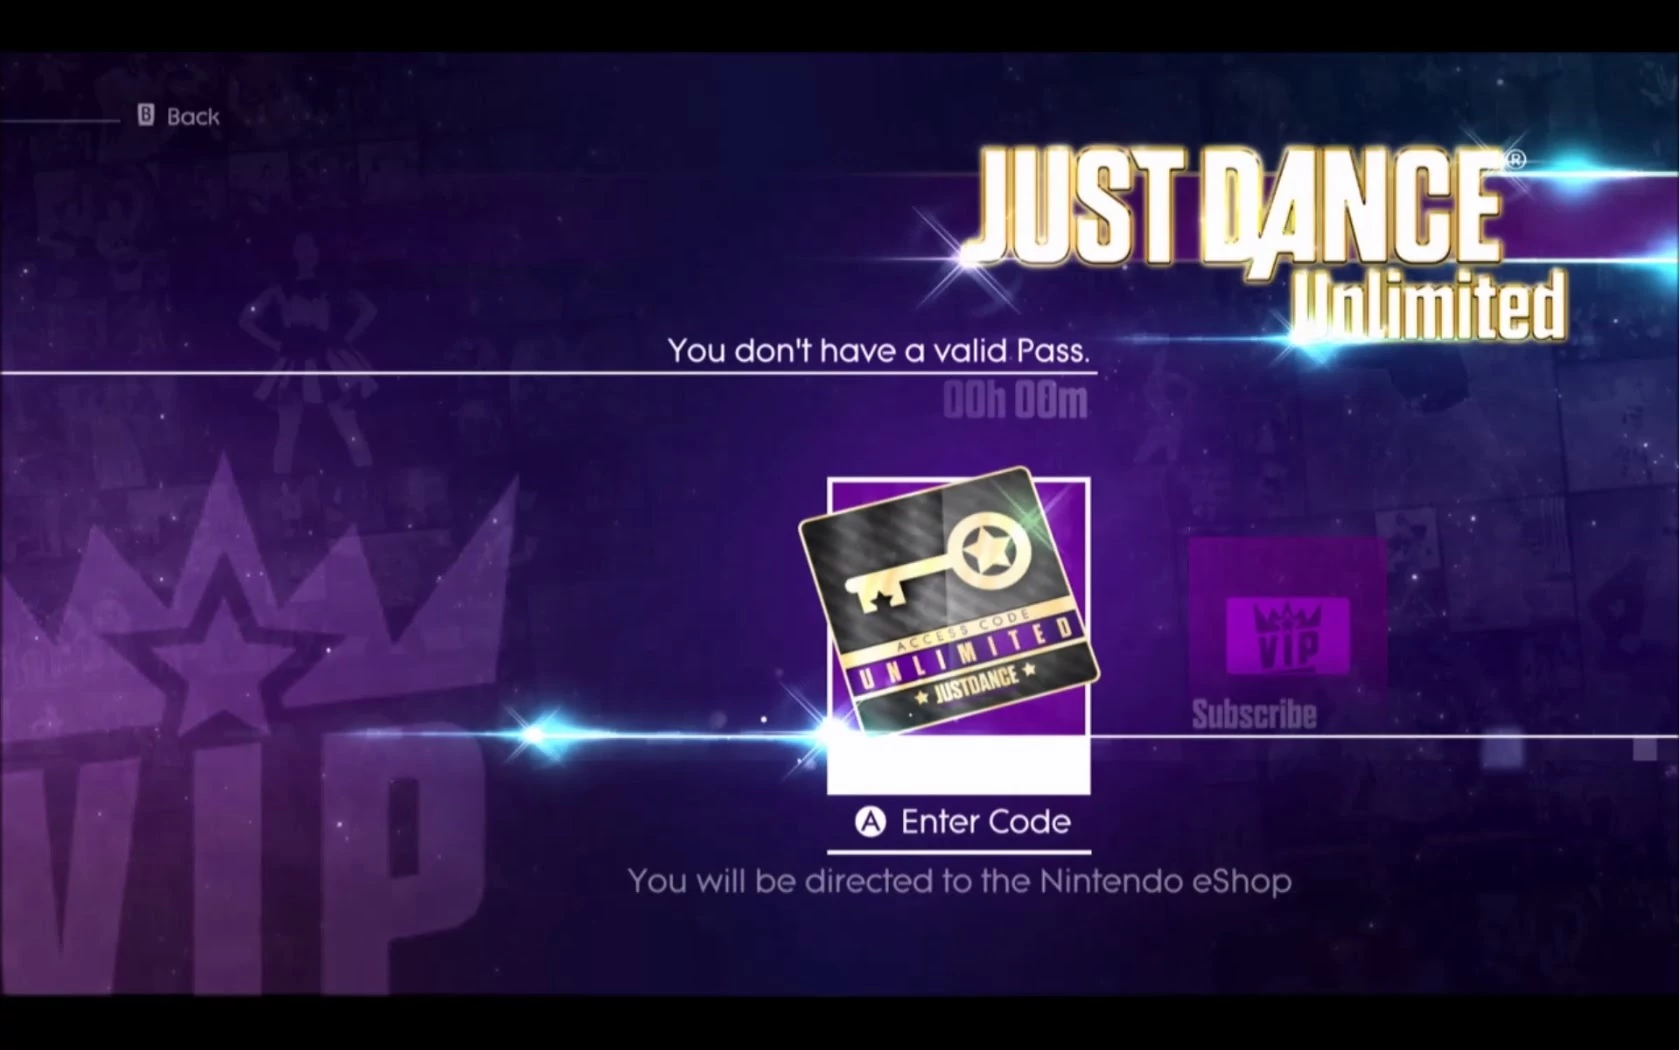 Just Dance Unlimited | Just Dance (Videogame series) Wiki | FANDOM